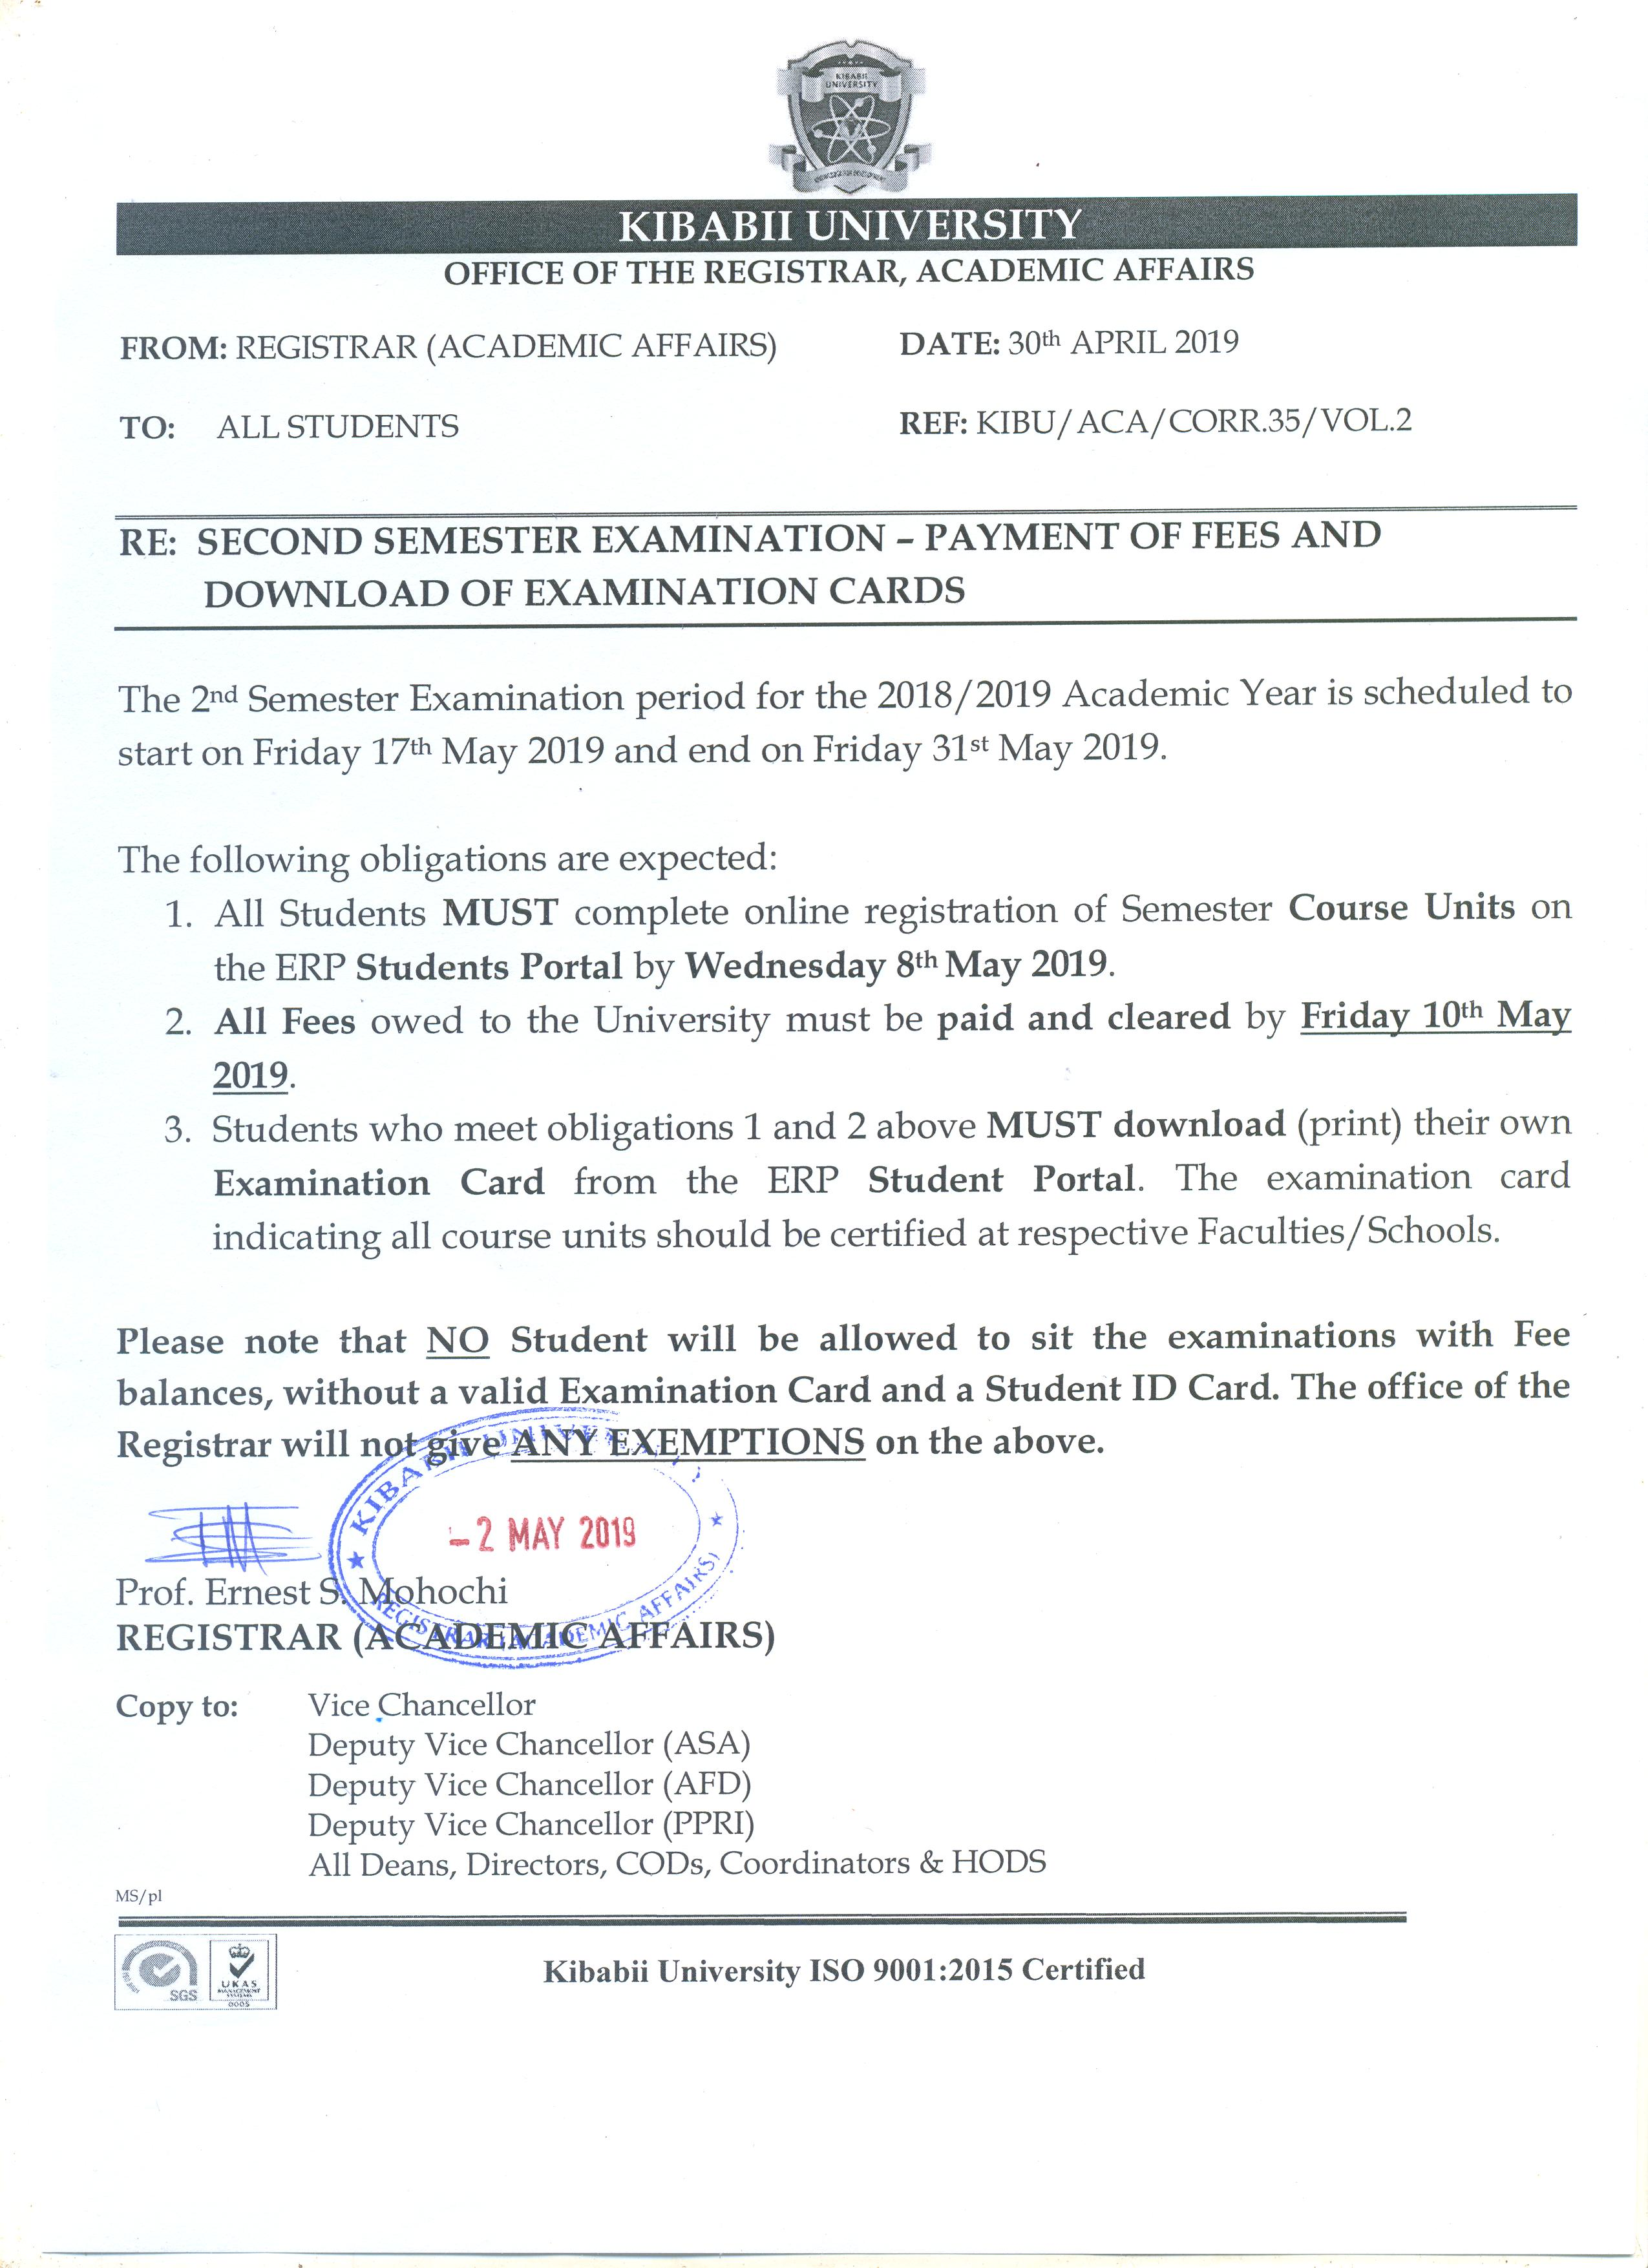 Second Semester Examination - Payment of Fees and Download of Examination Cards